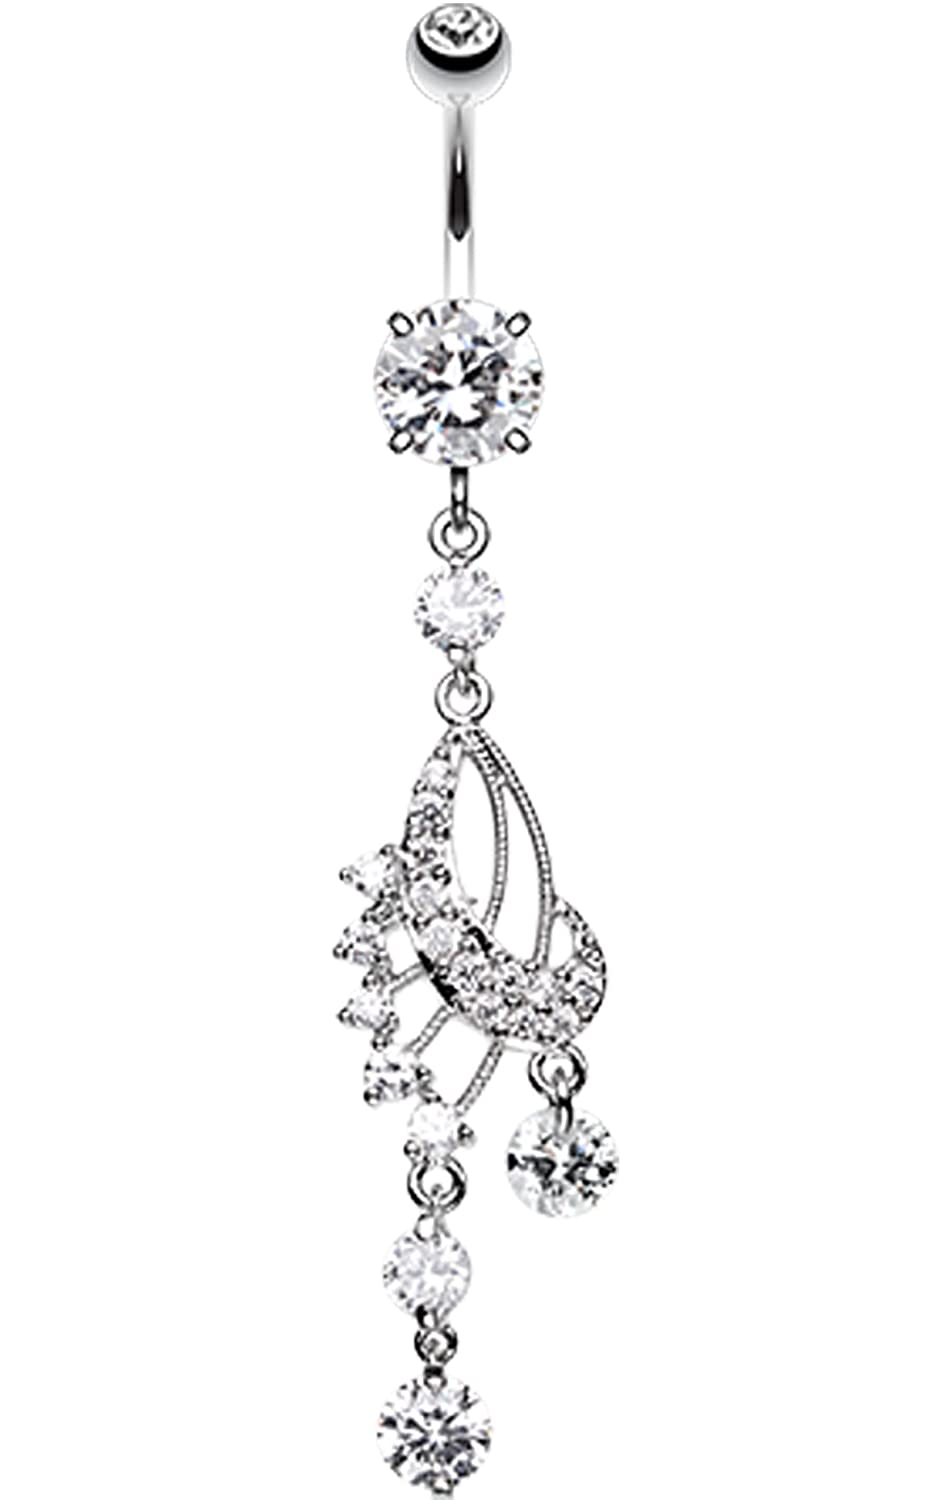 1.6mm 14 GA - Sold Individually Dazzling Harp Elegance Belly Button Ring